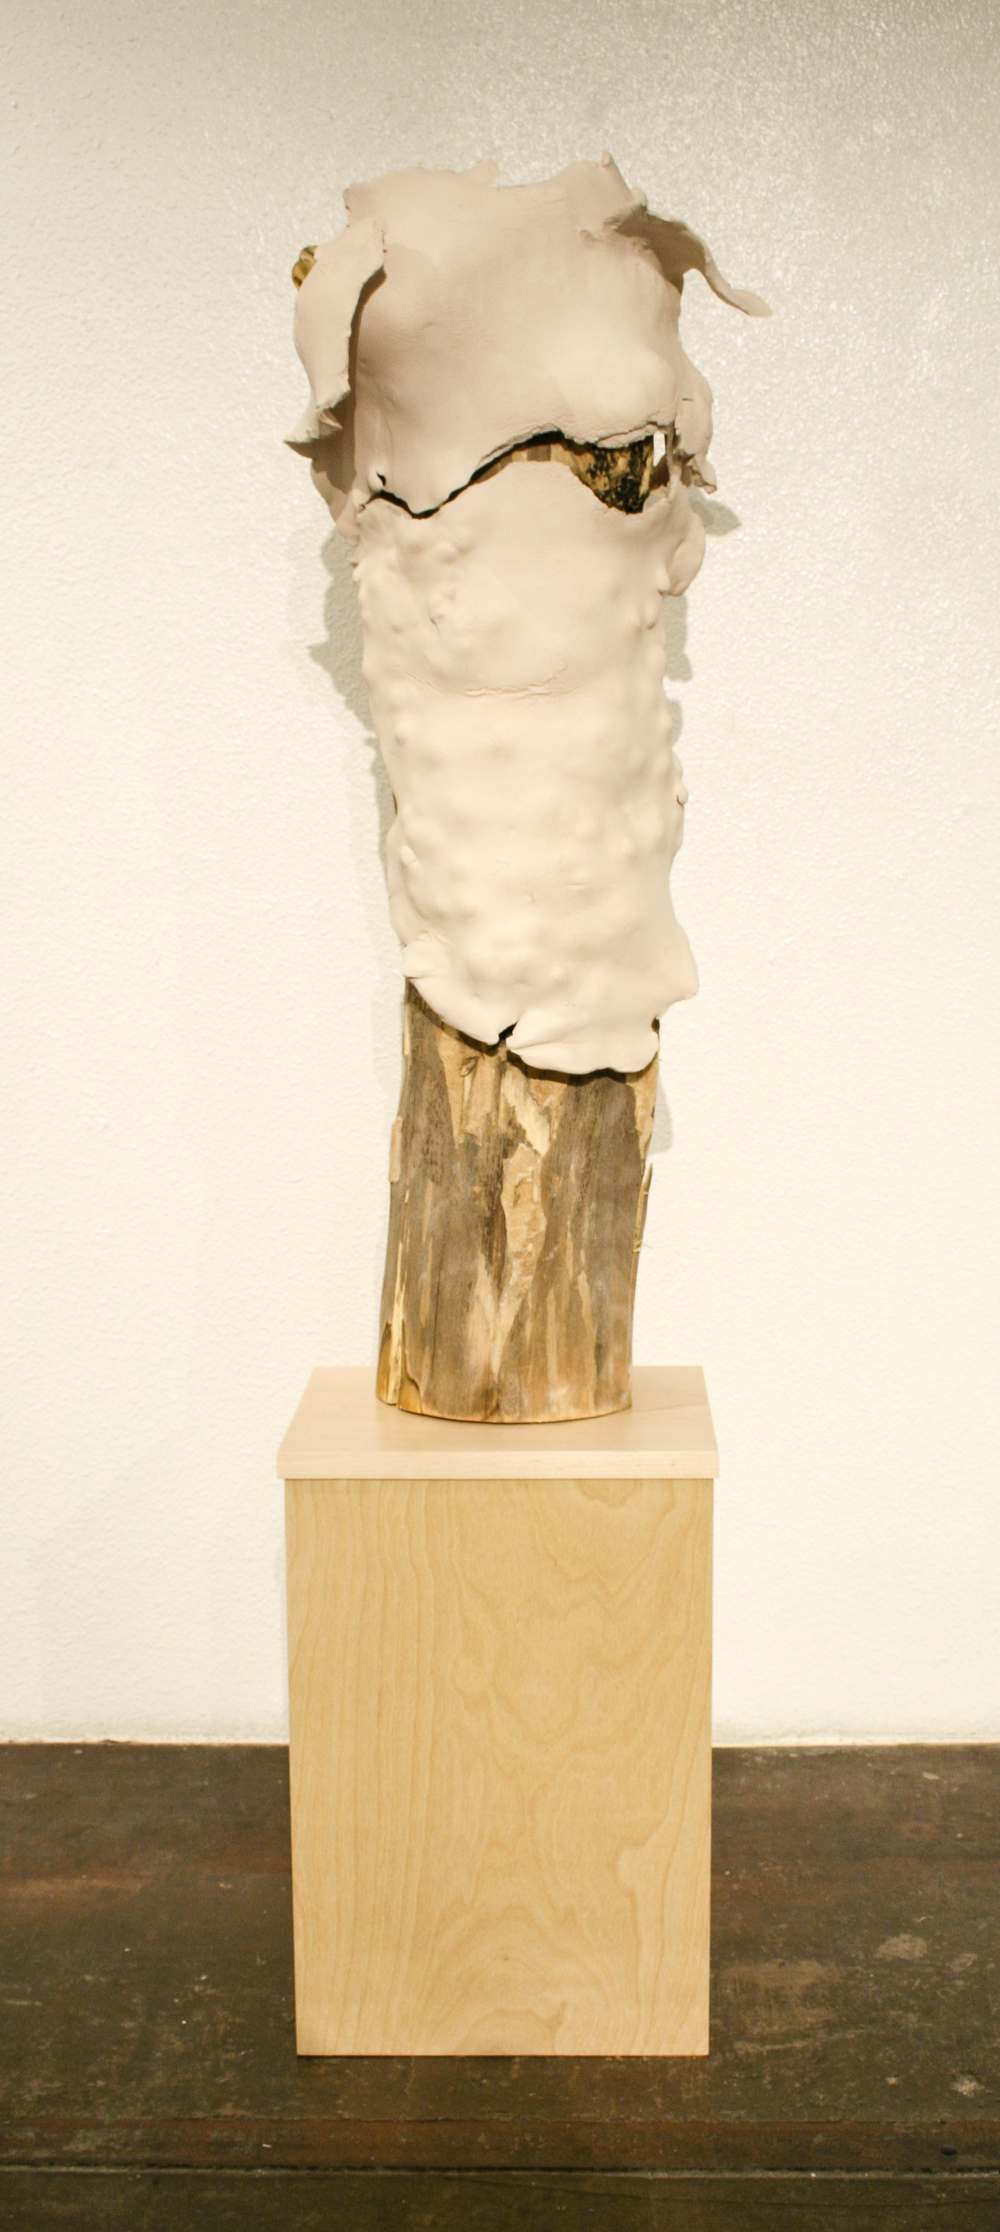 "Kim Ferrer  ""Cellular Memory""  64x12  Clay, wood"